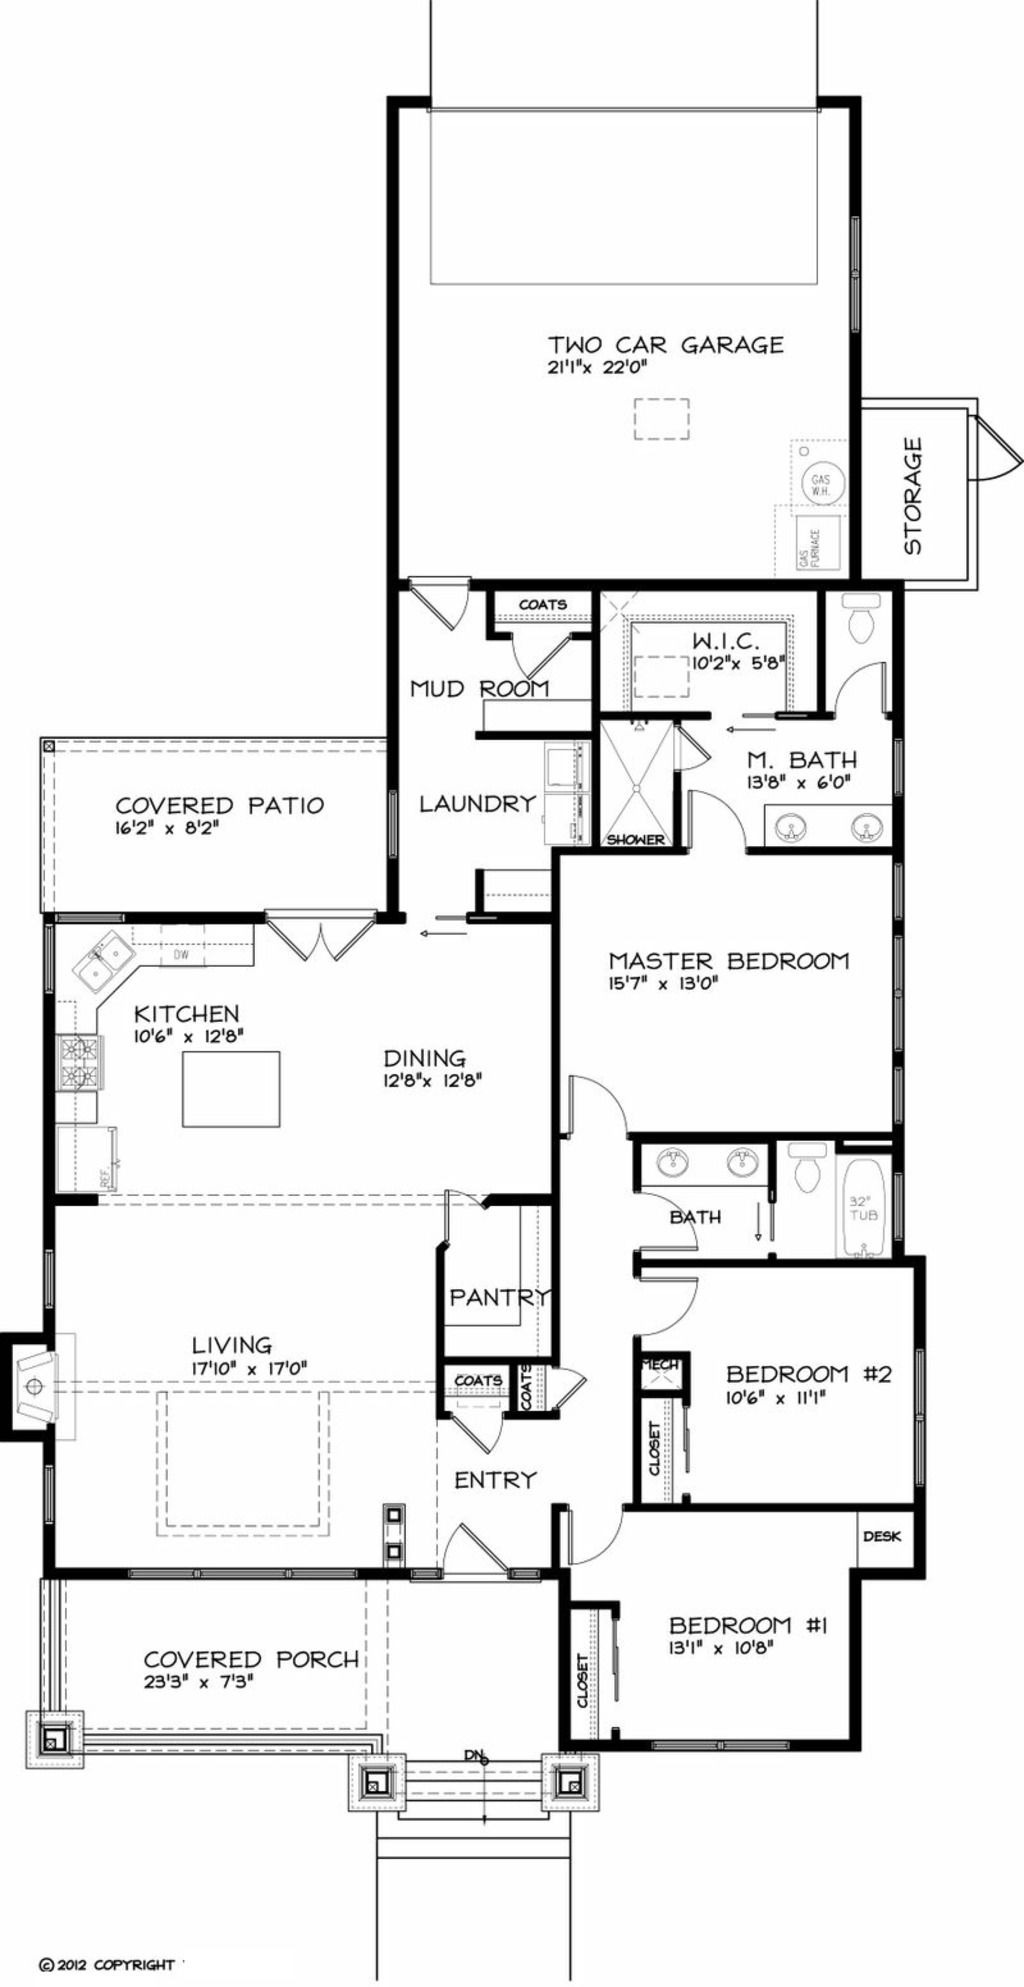 One Level House Plans with Garage Awesome Nice Single Story Plan but Would Likely Omit the Garage